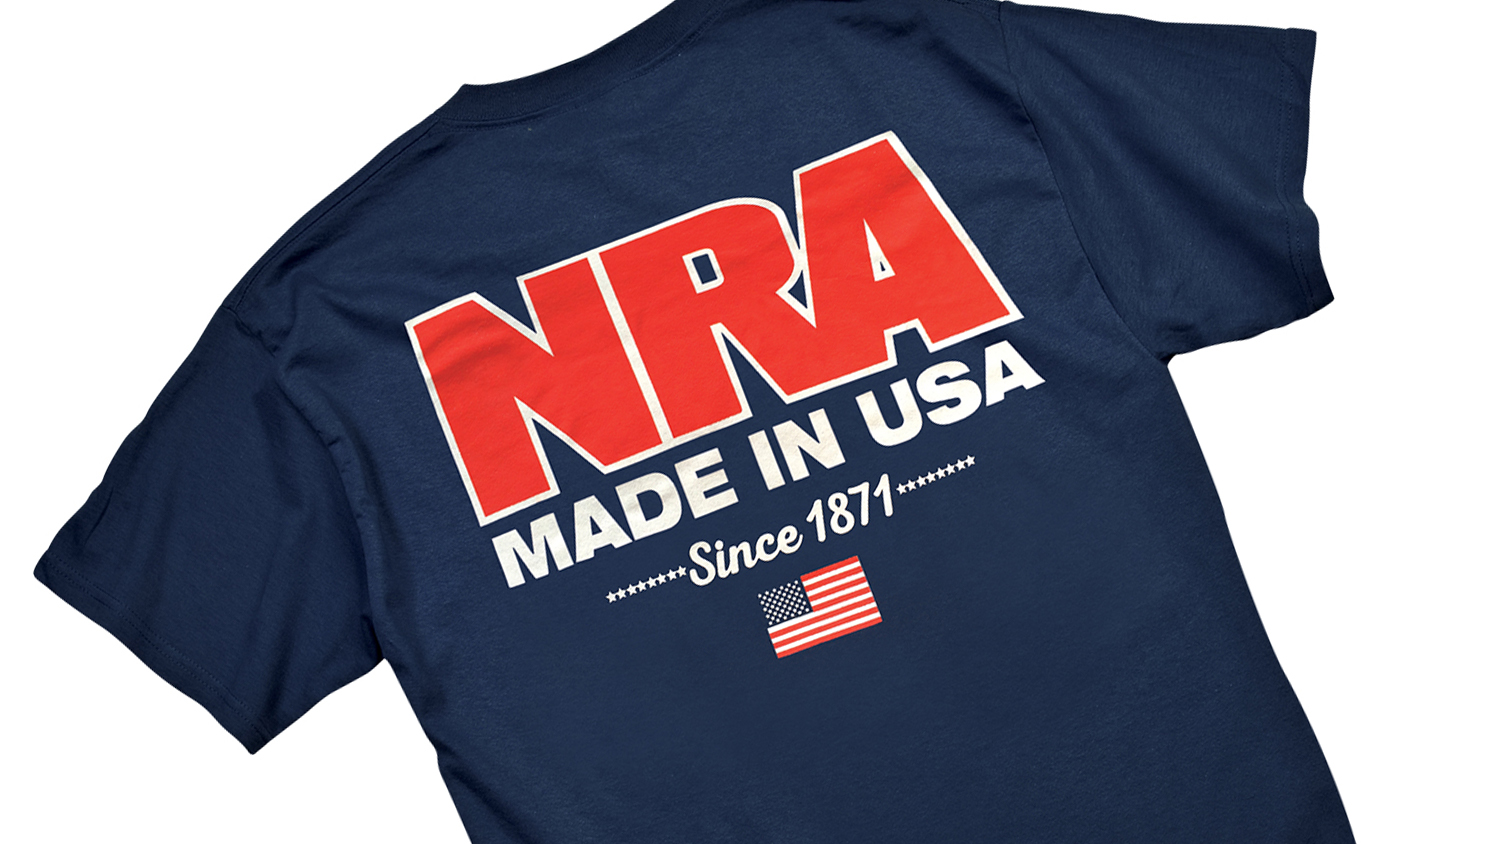 8 Products Every NRA Member Should Own